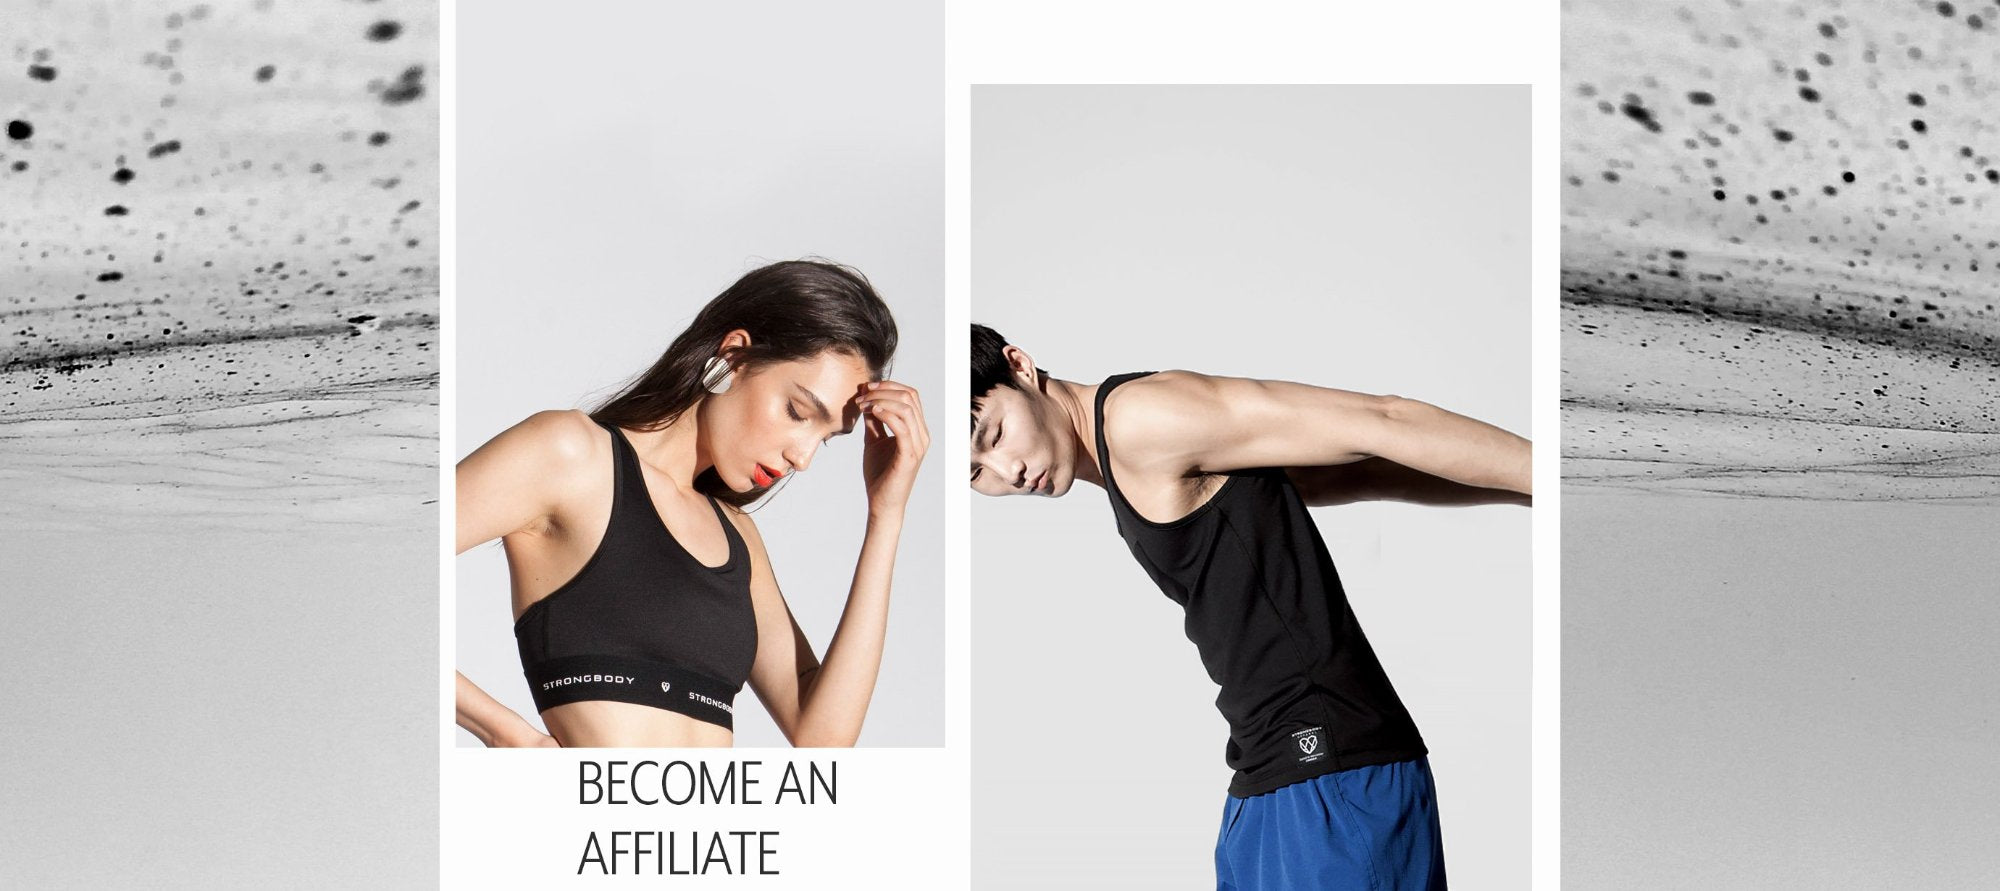 Become a Strongbody affiliate